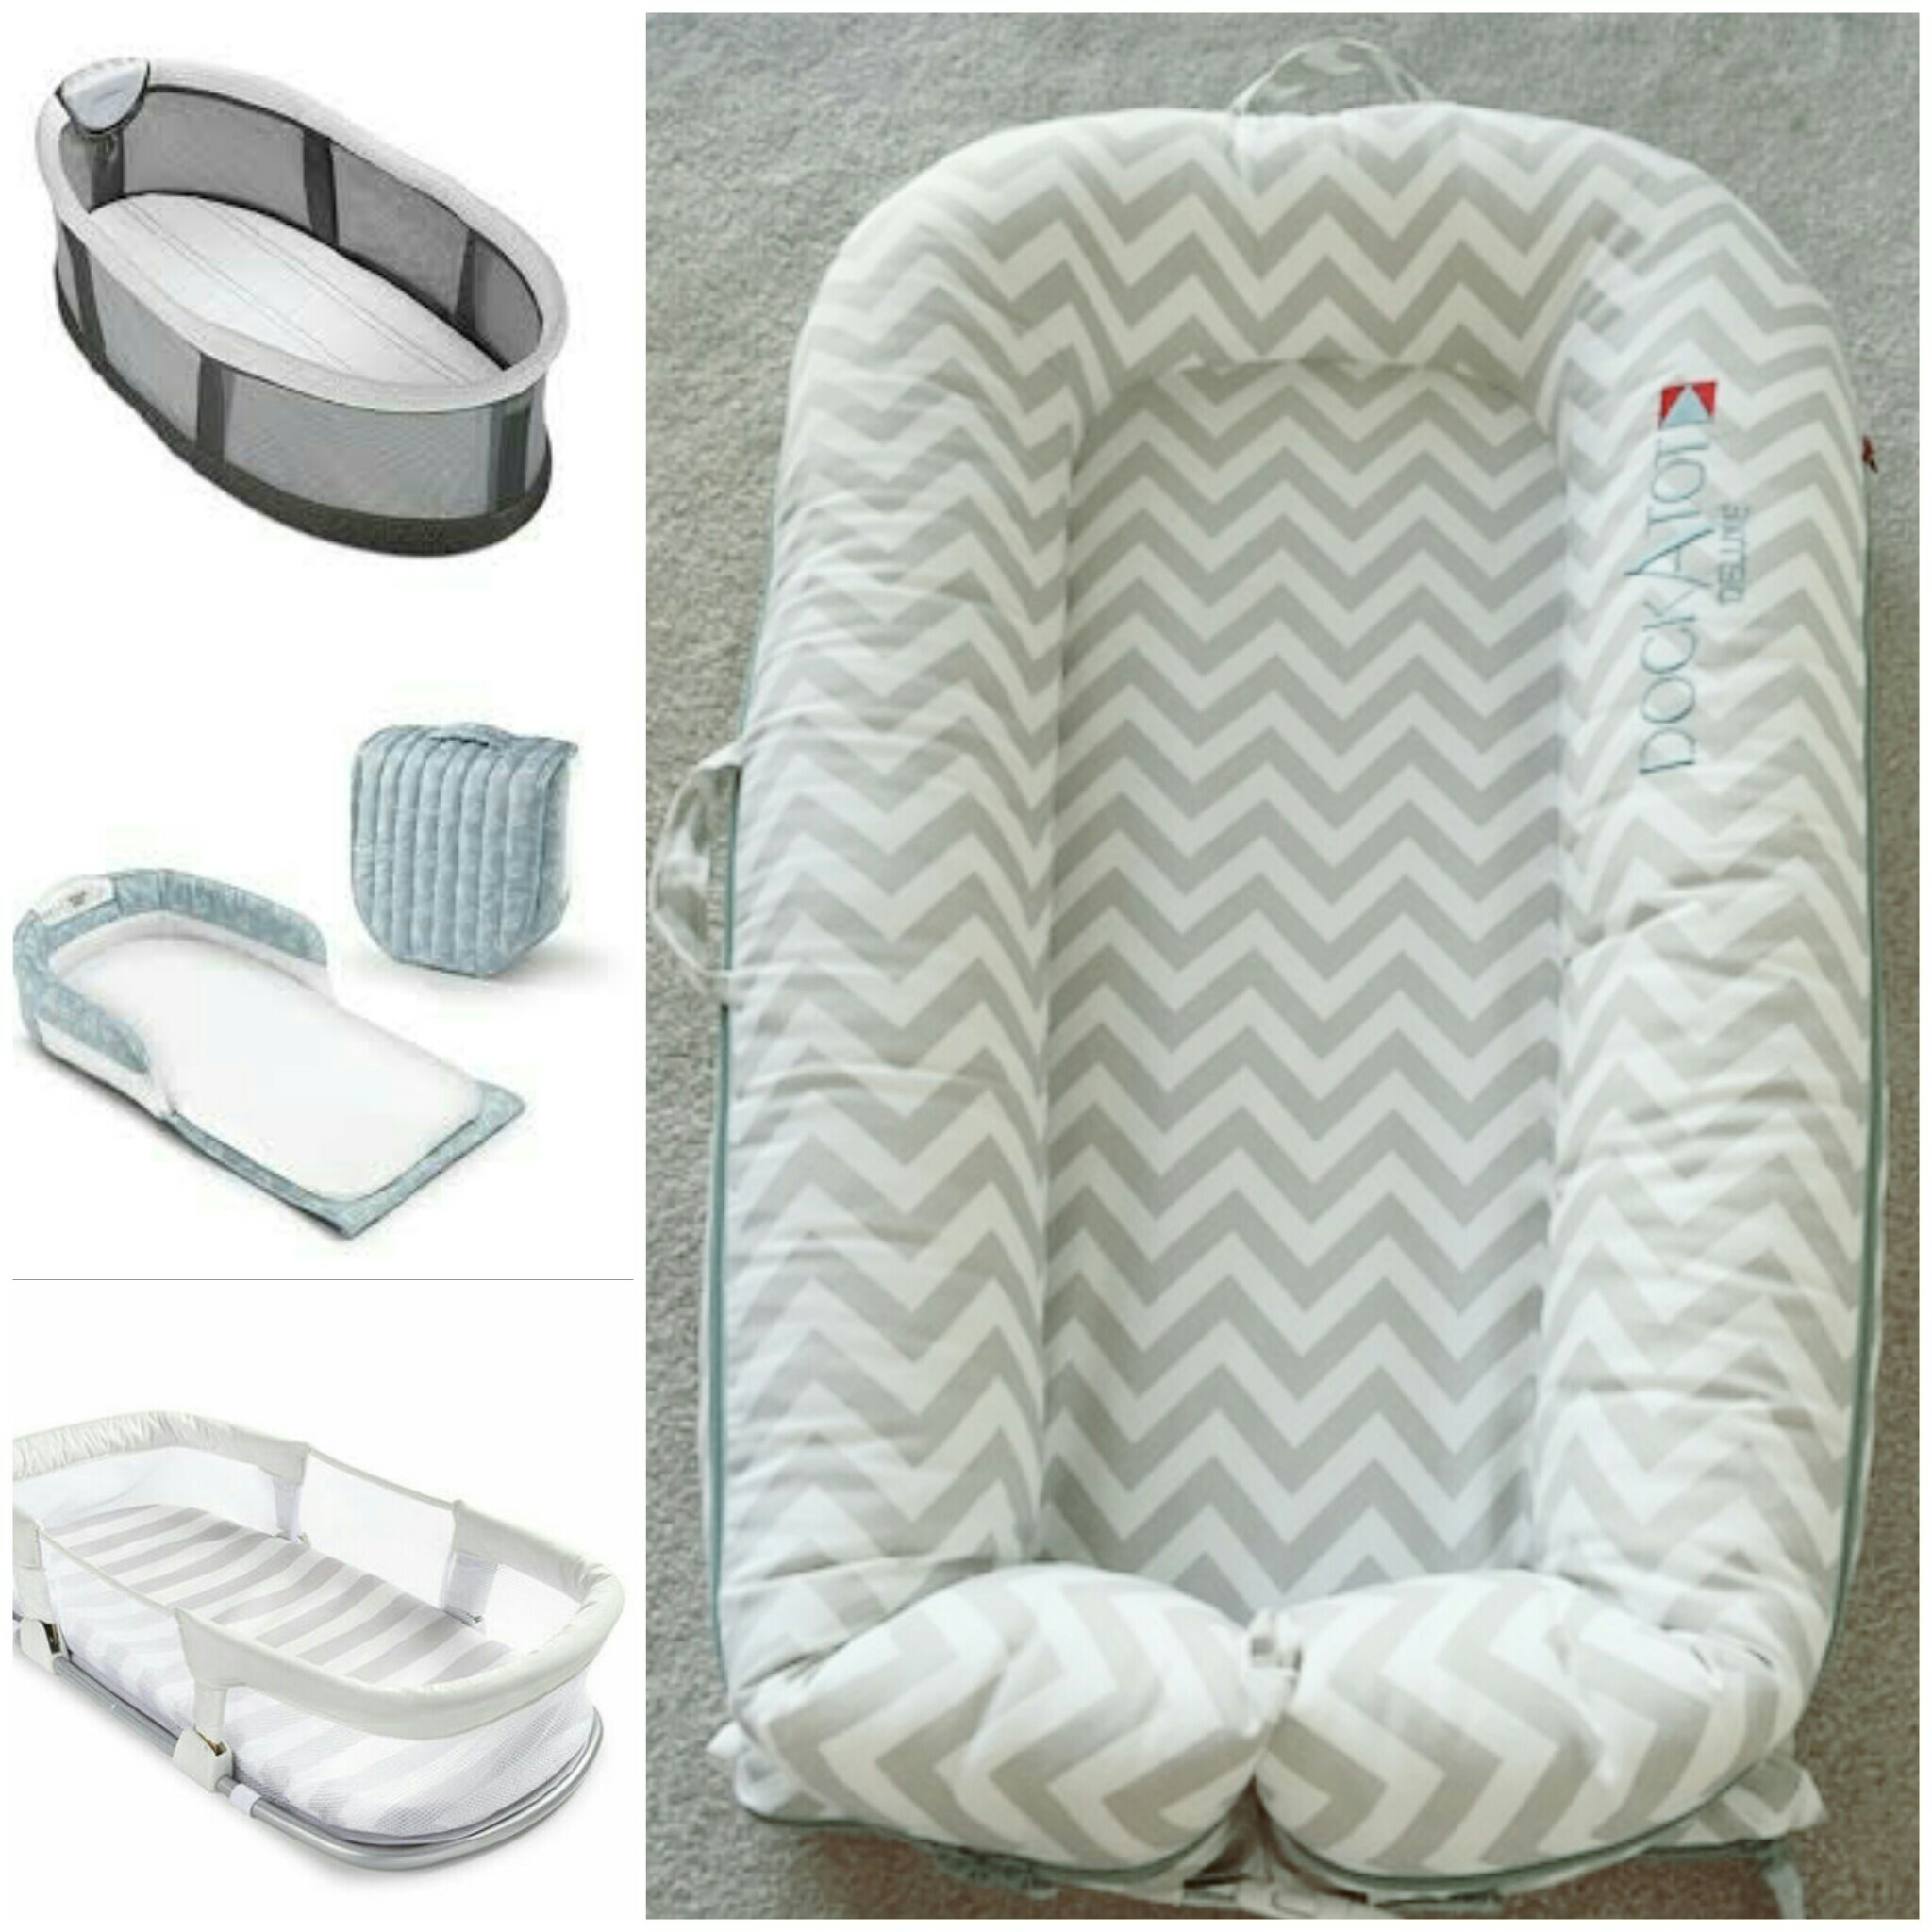 A few examples of co-sleepers you can take in bed with you and your partner. This allows for baby to be close, but also garuntees safety perameters for baby to sleep in.